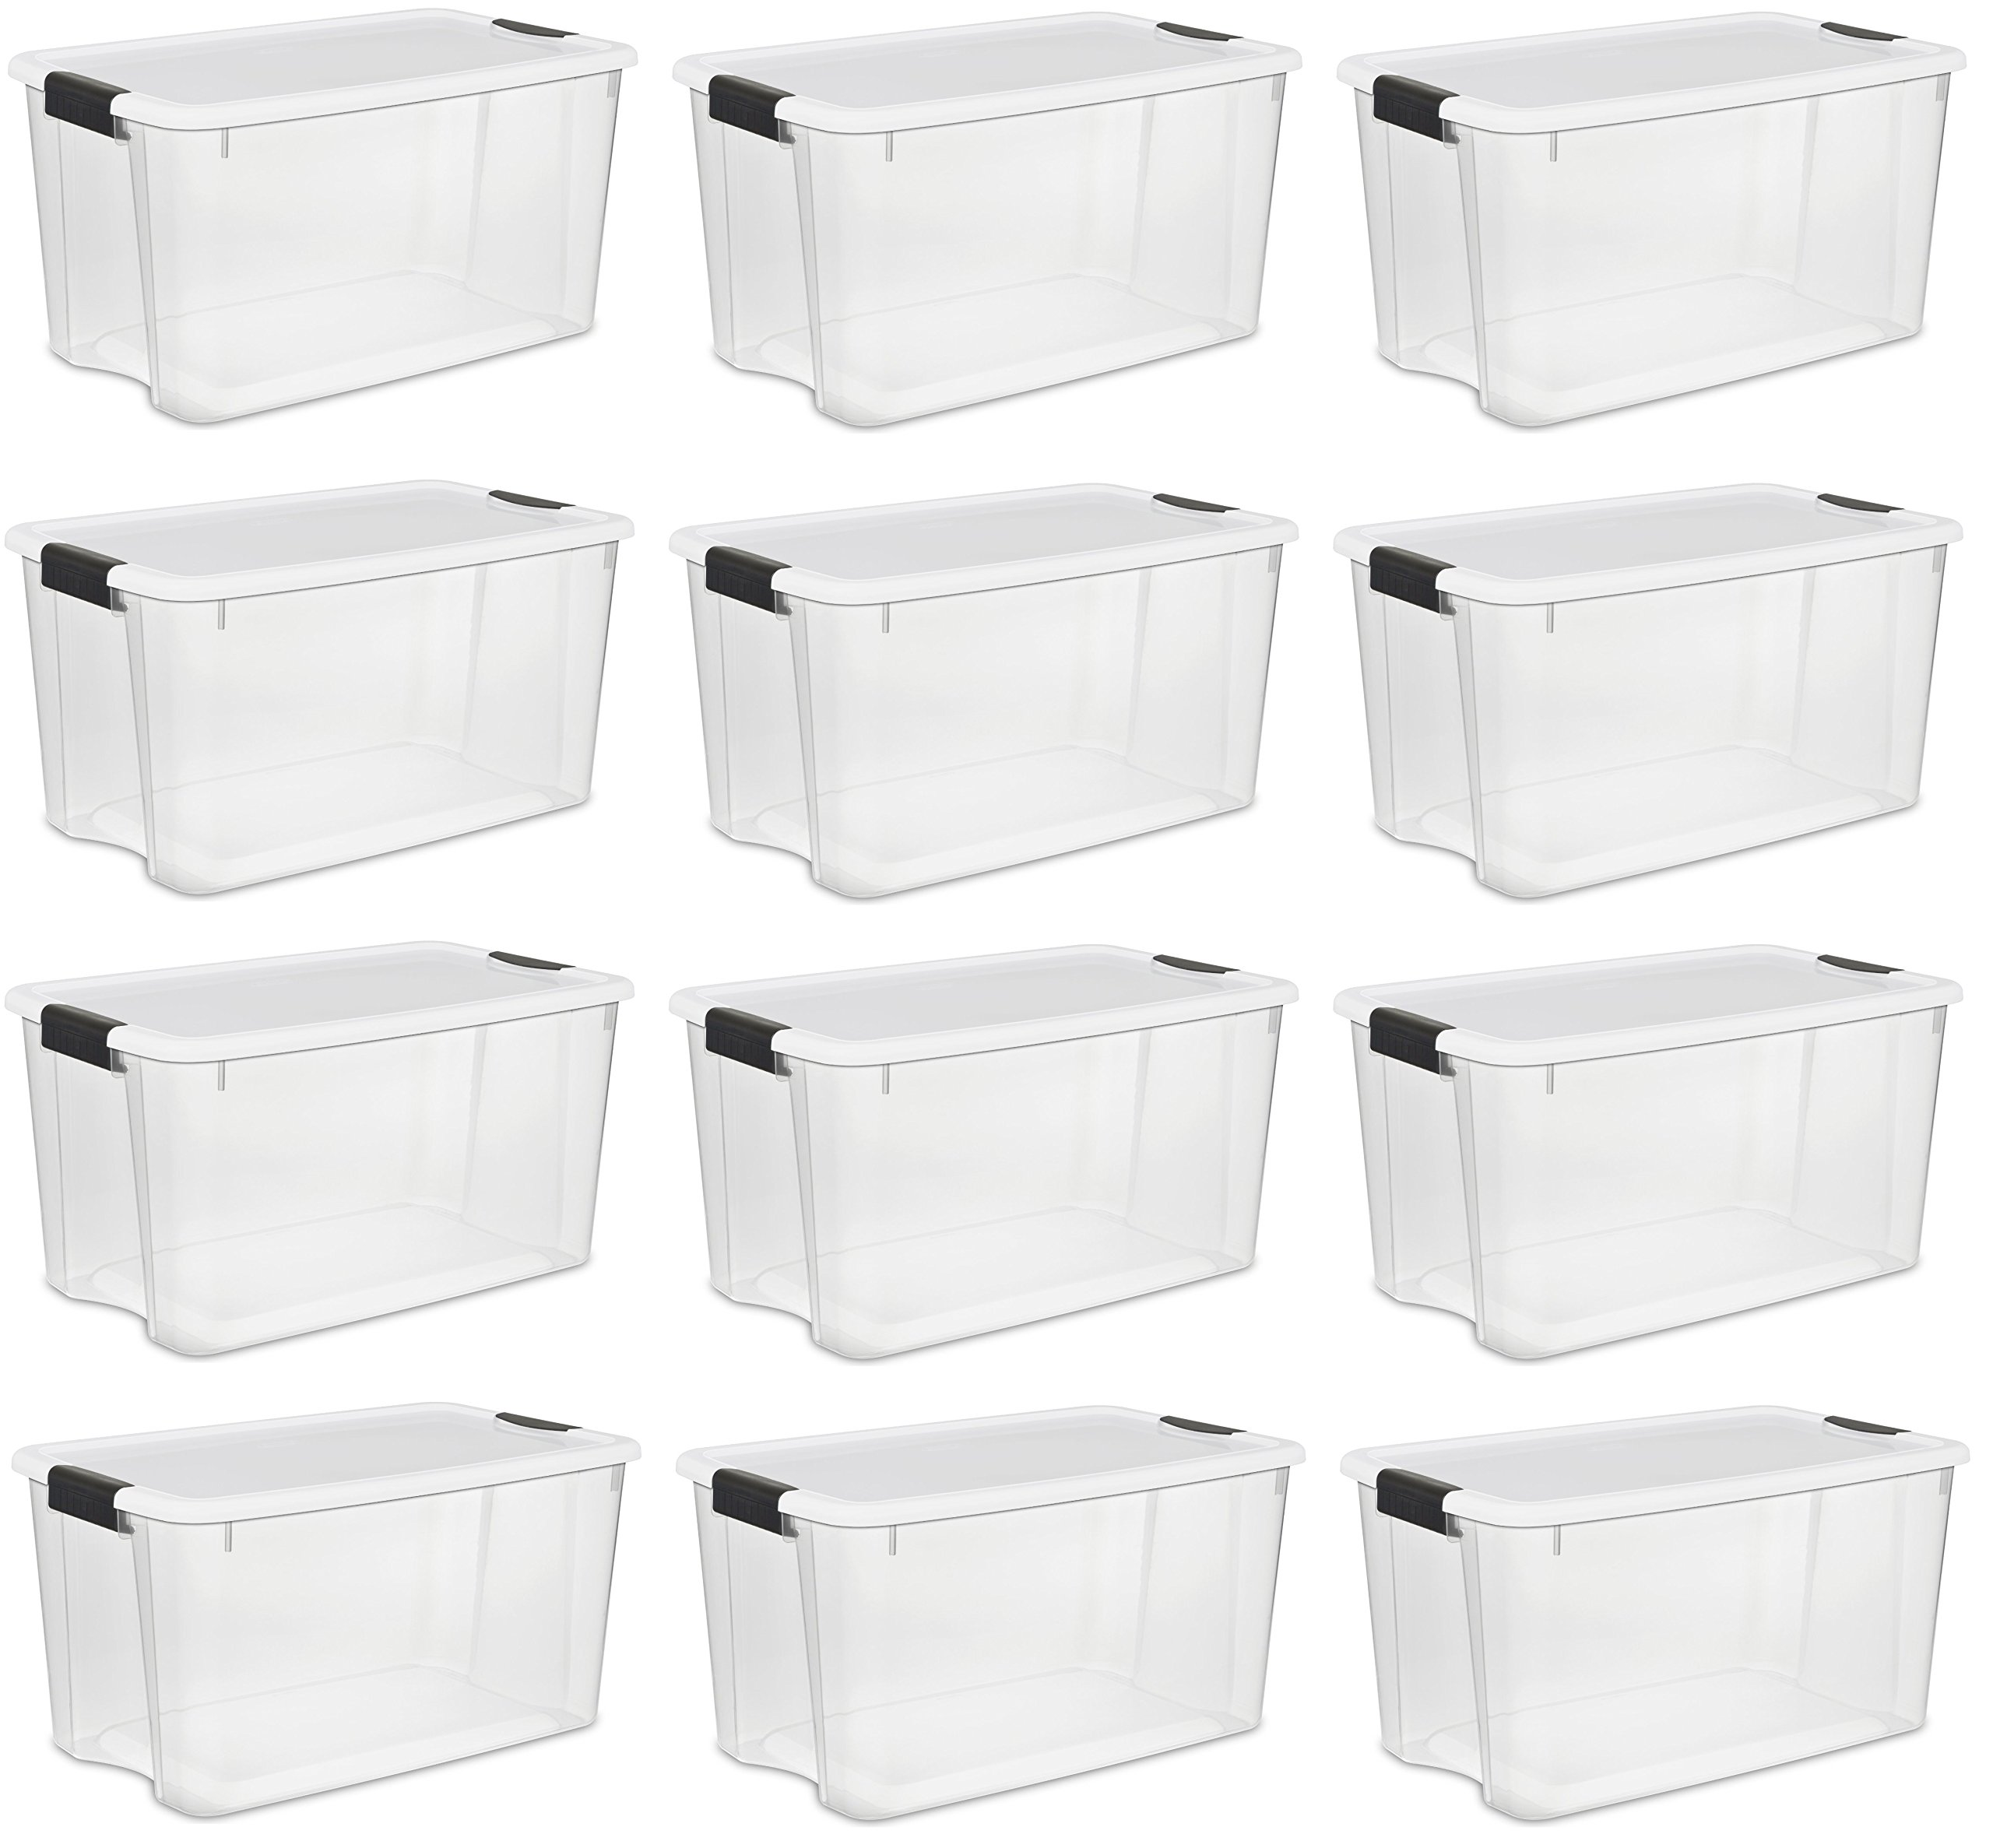 Sterilite, 30 Quart/28 Liter Ultra Latch Box, Clear with a White Lid and Black Latches, (12-Pack)